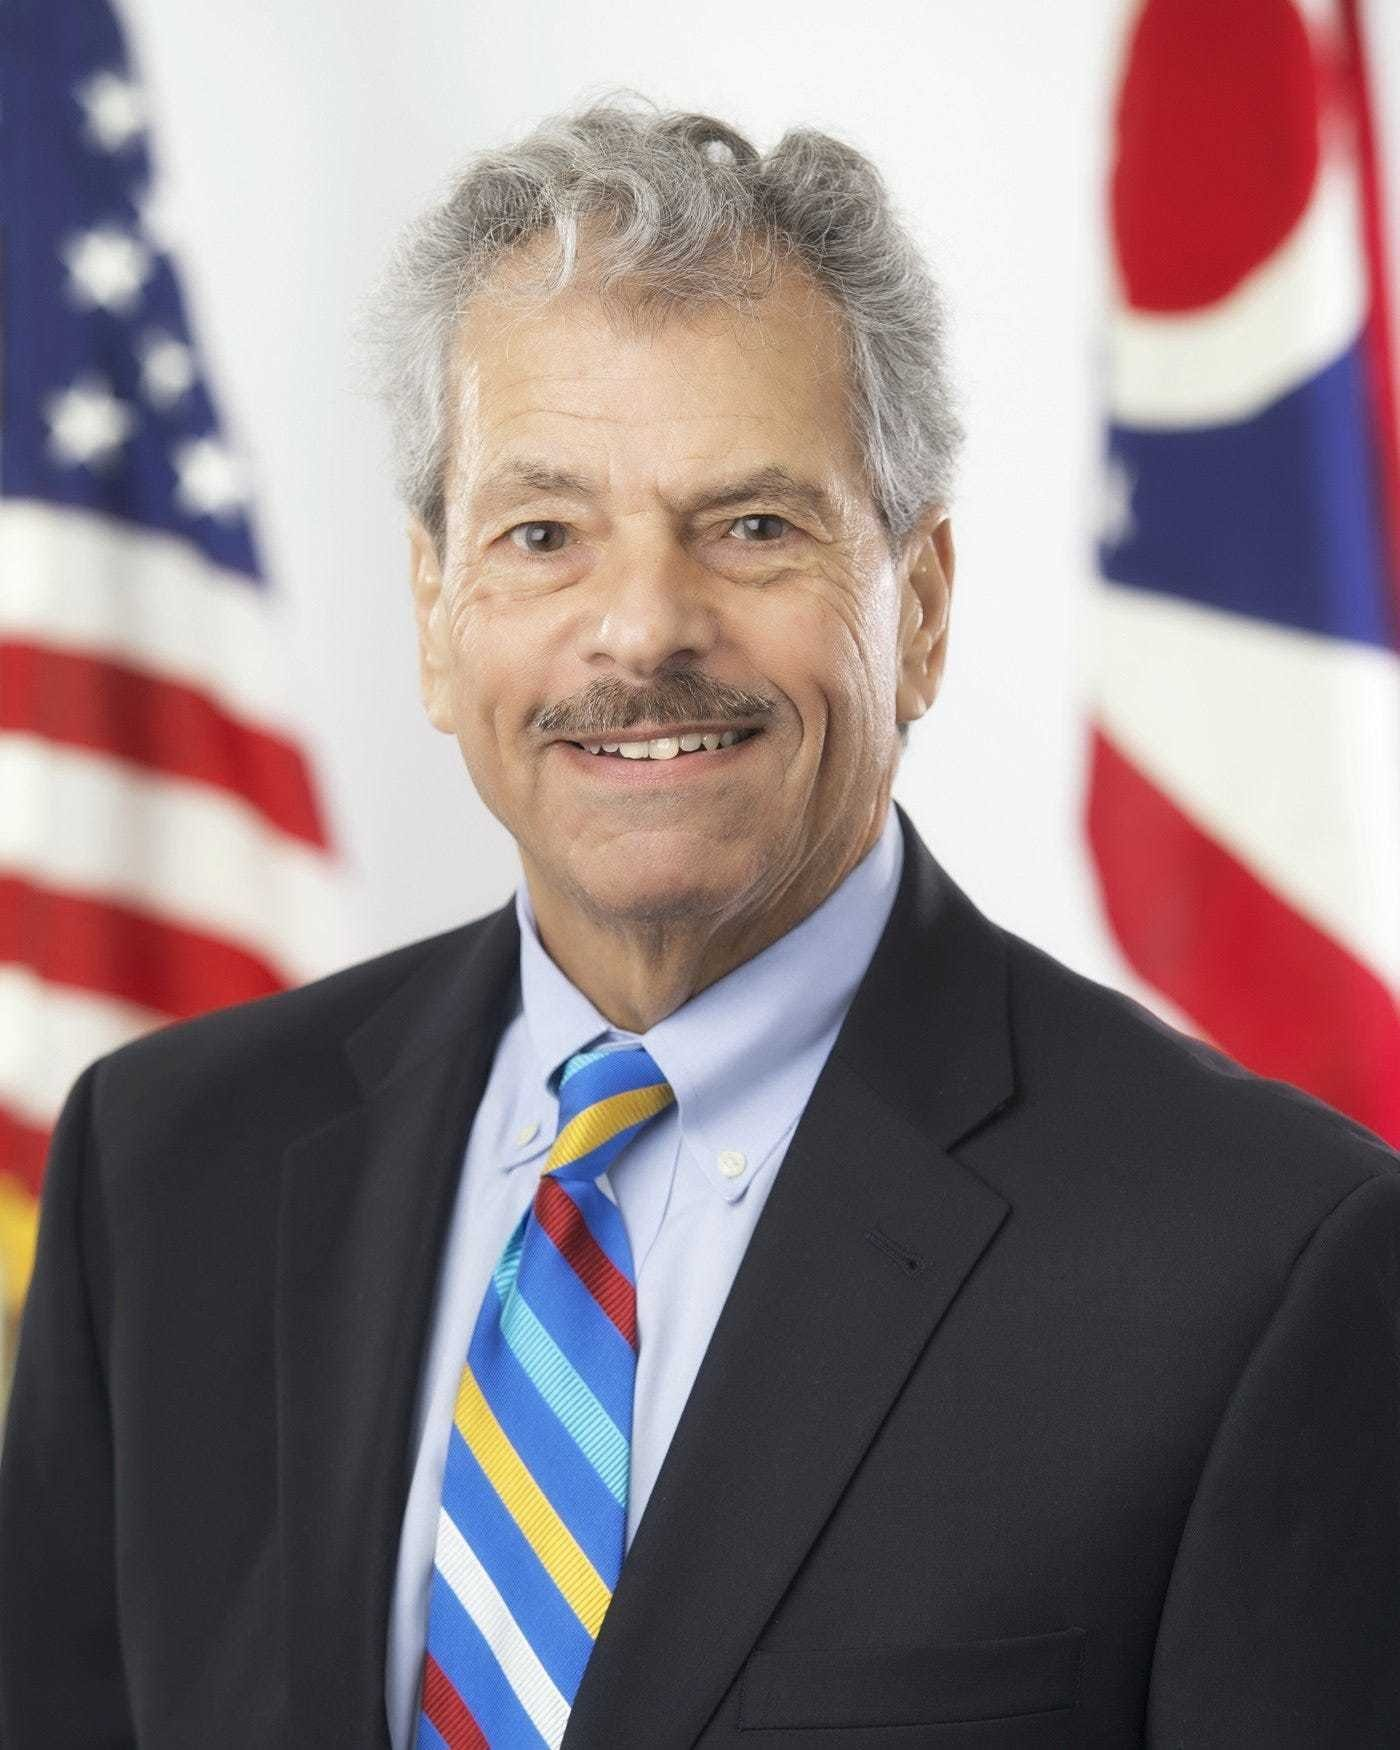 Sam Randazzo, who resigned late last year as chairman of the Public Utilities Commission of Ohio.